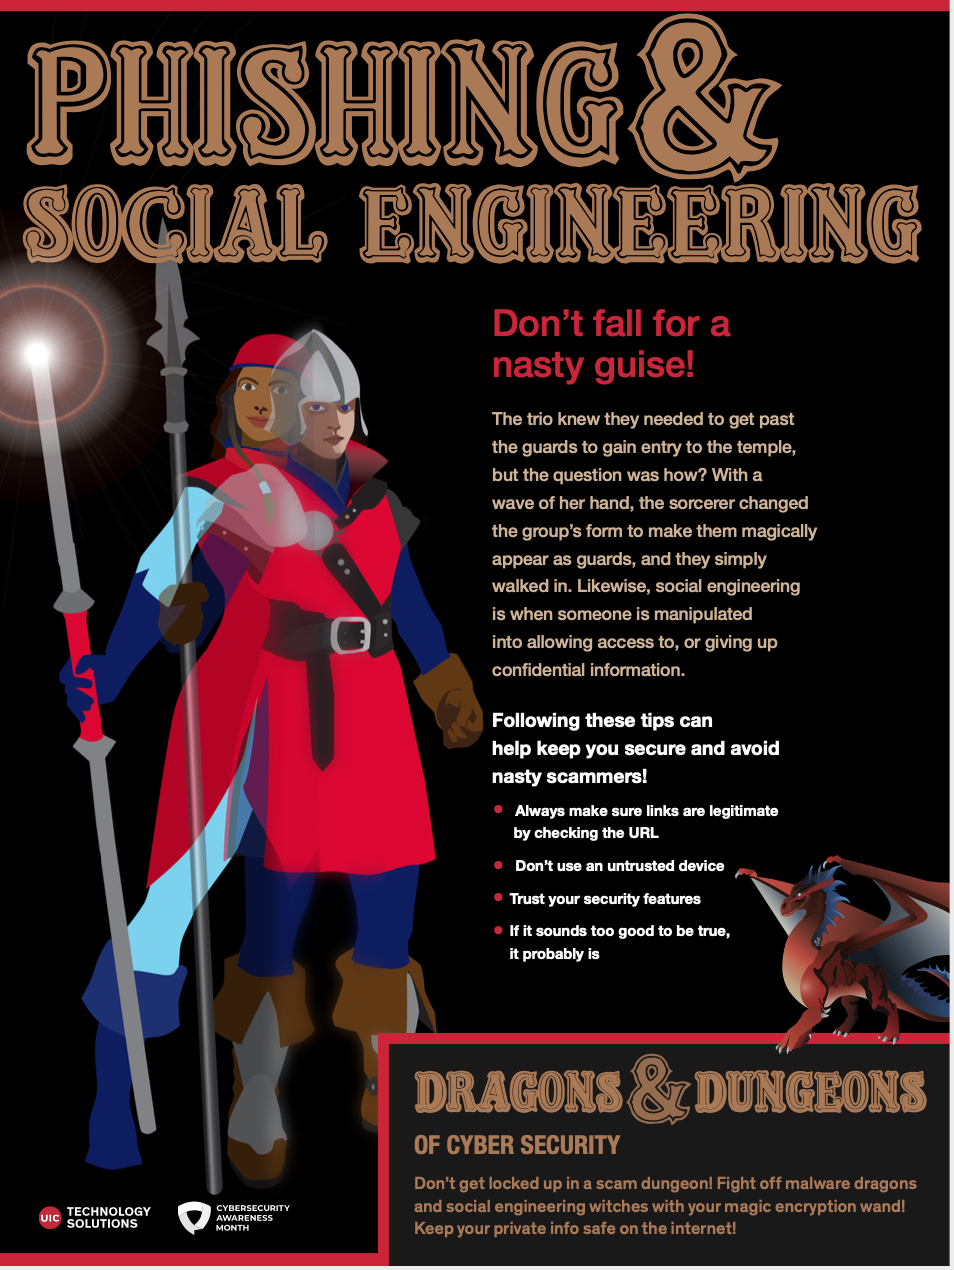 Social Engineering & Phishing Campaign poster